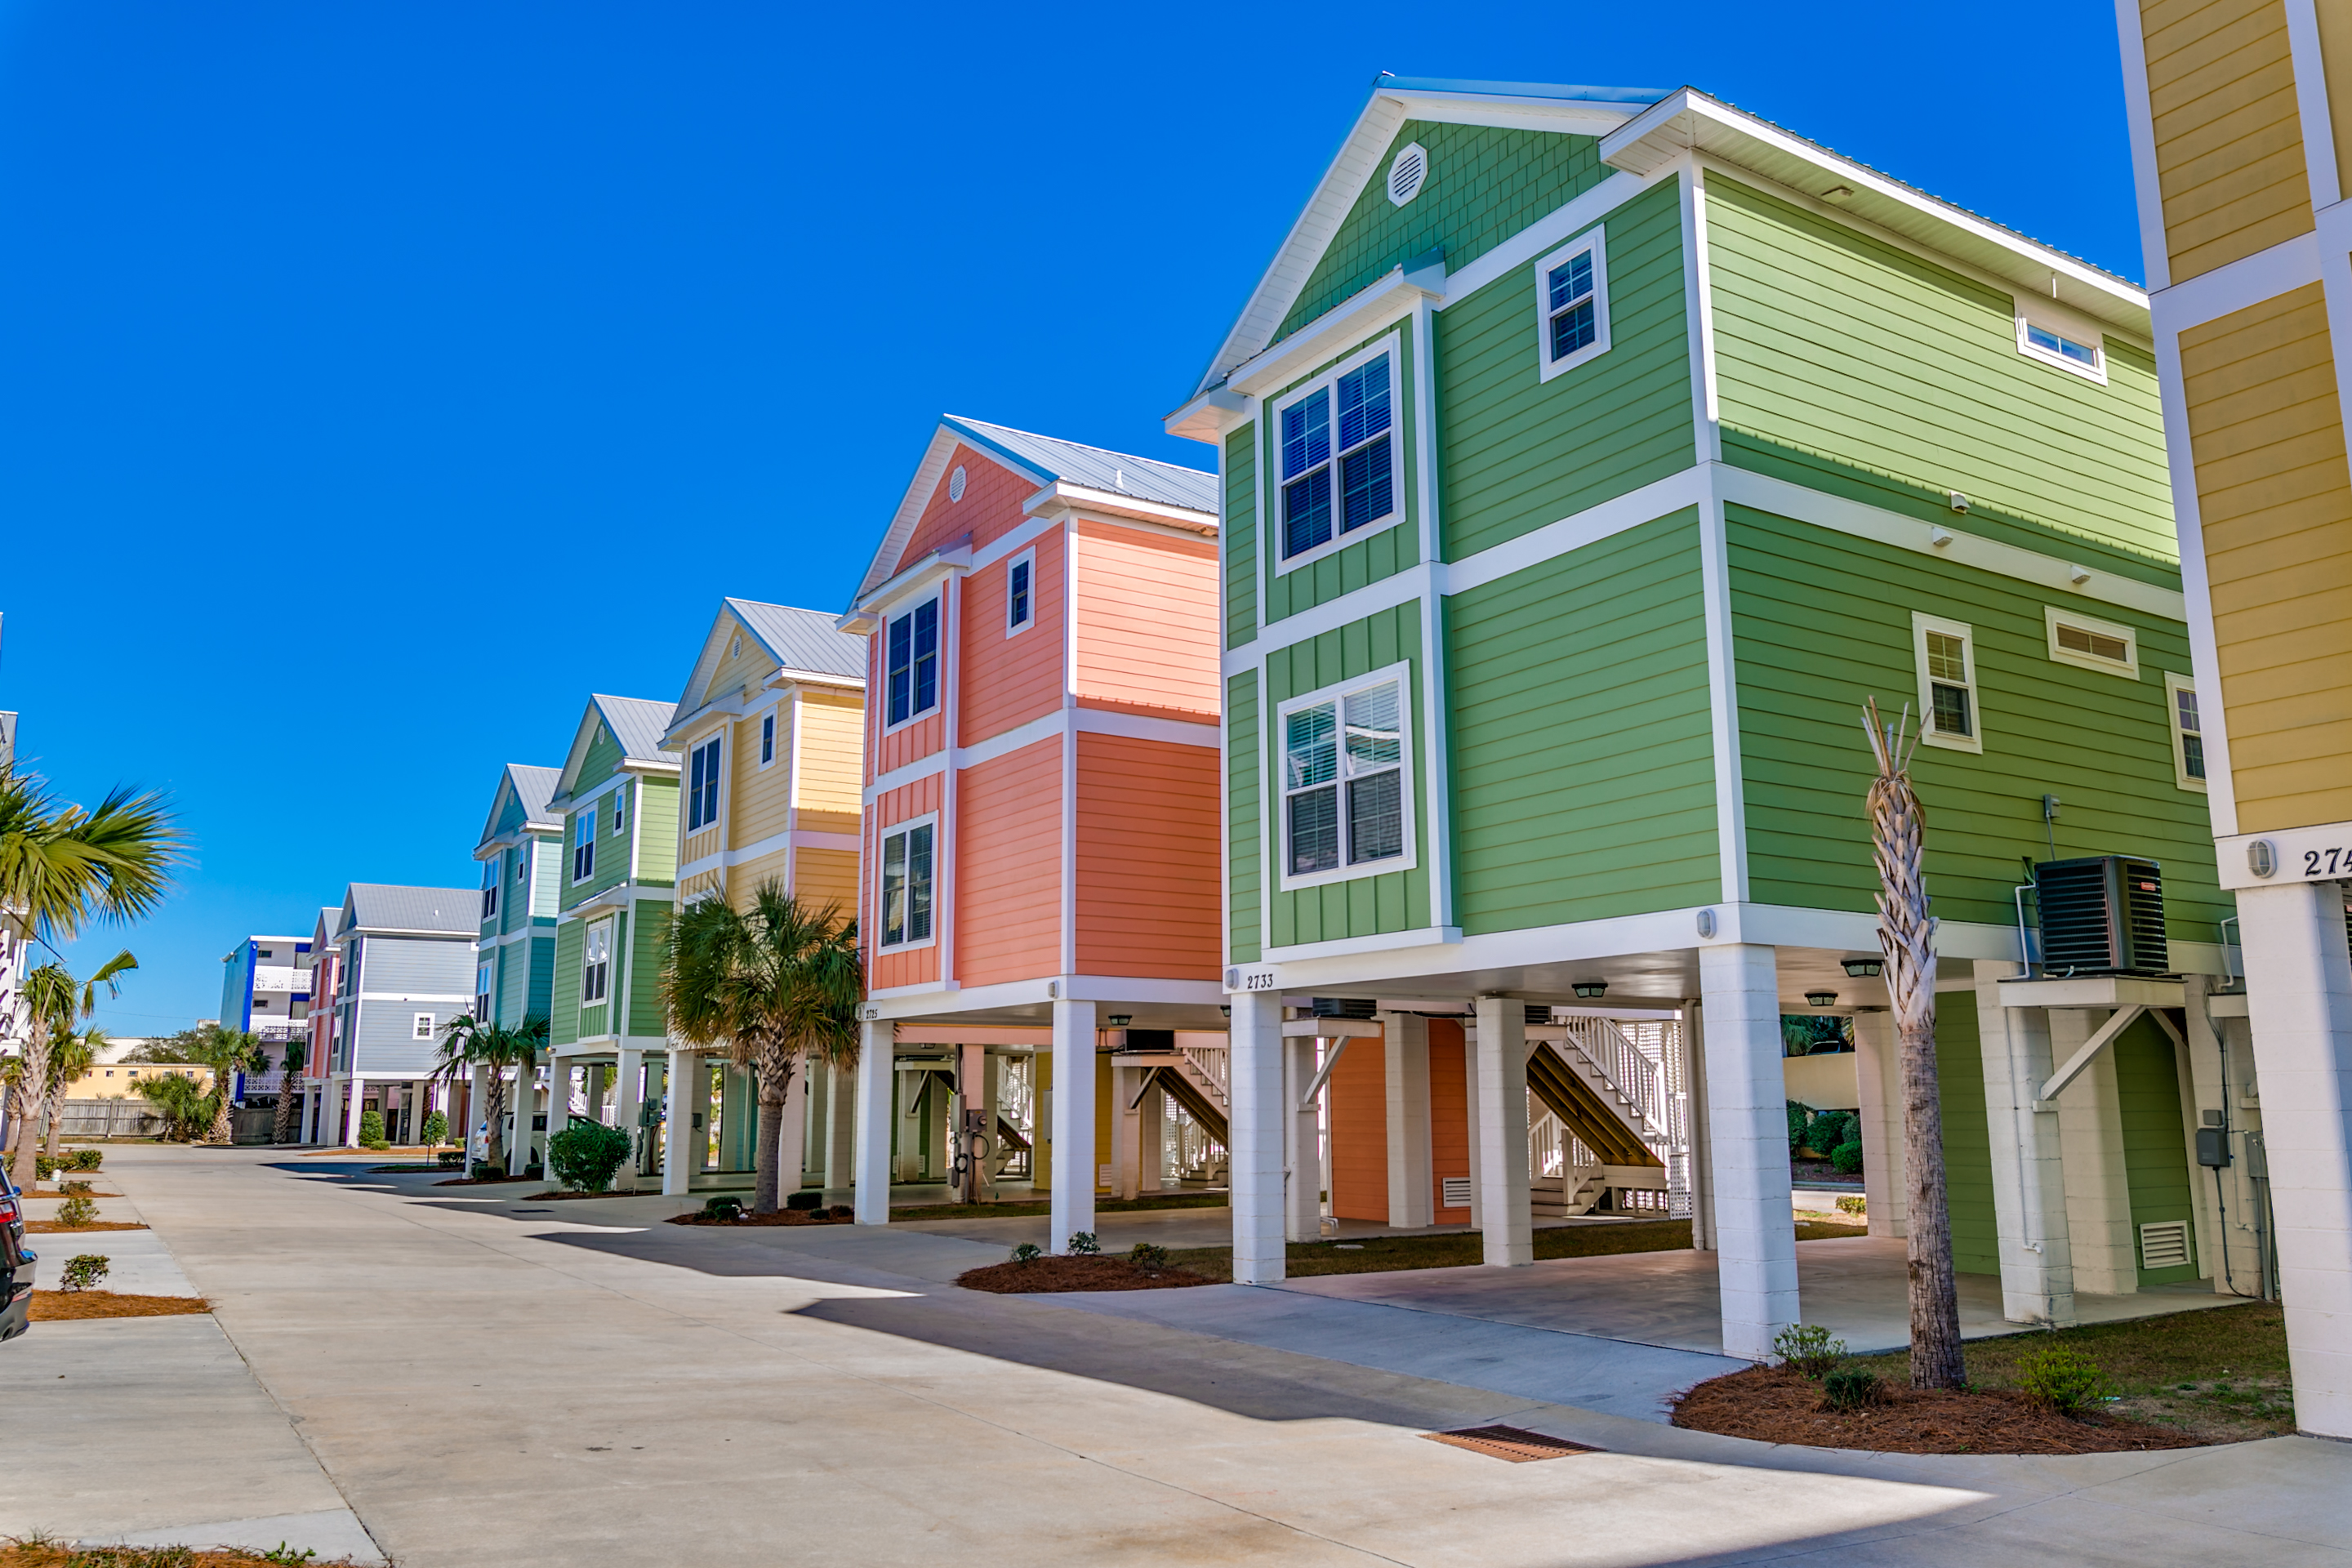 Vacation Rental Property Tax Deductions